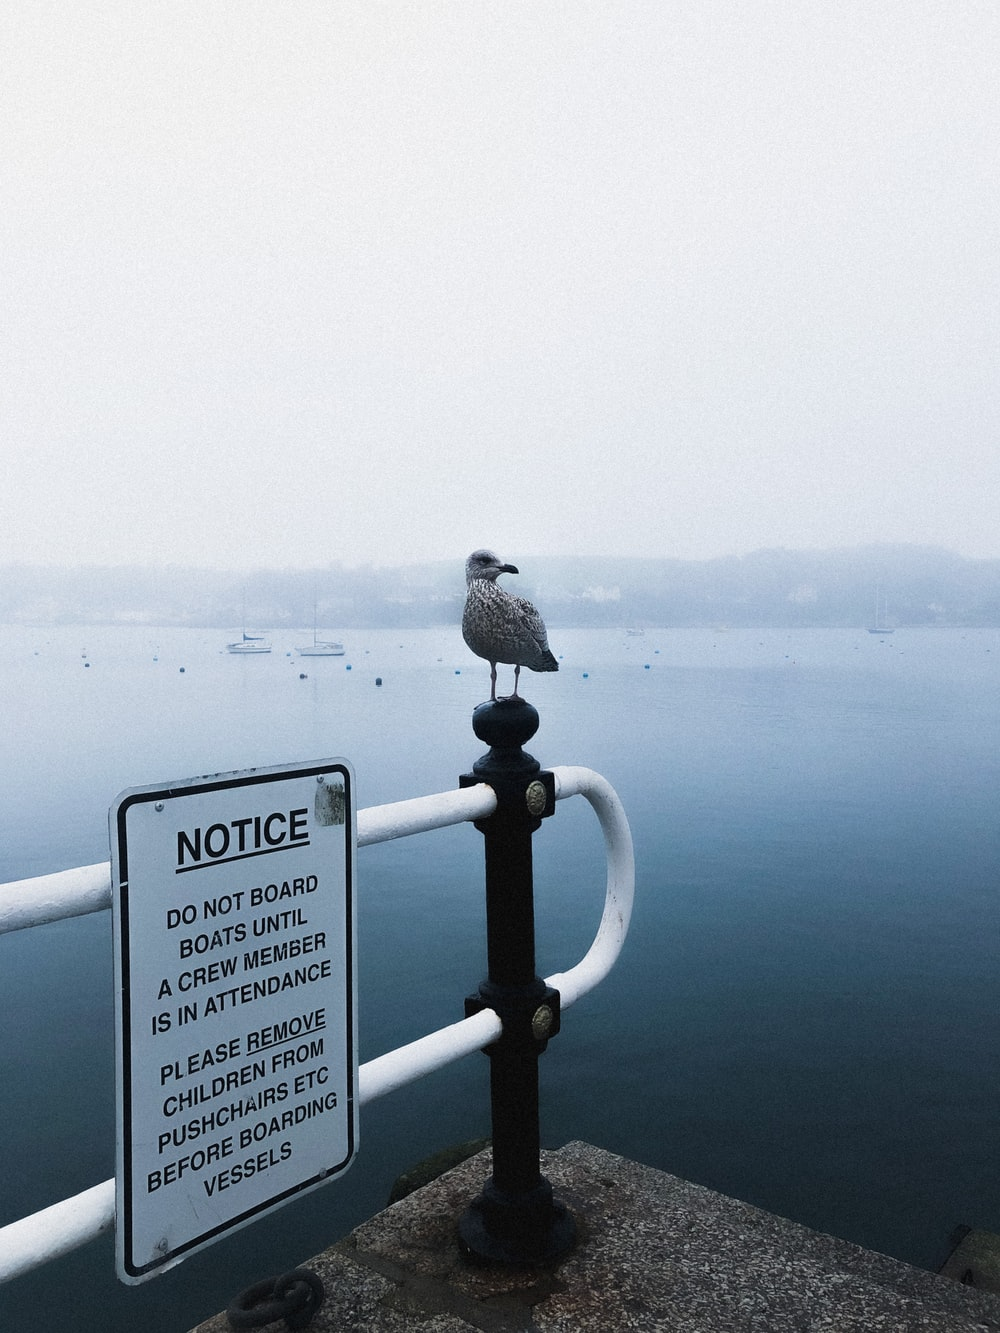 bird perched on white metal railings near body of water during daytime